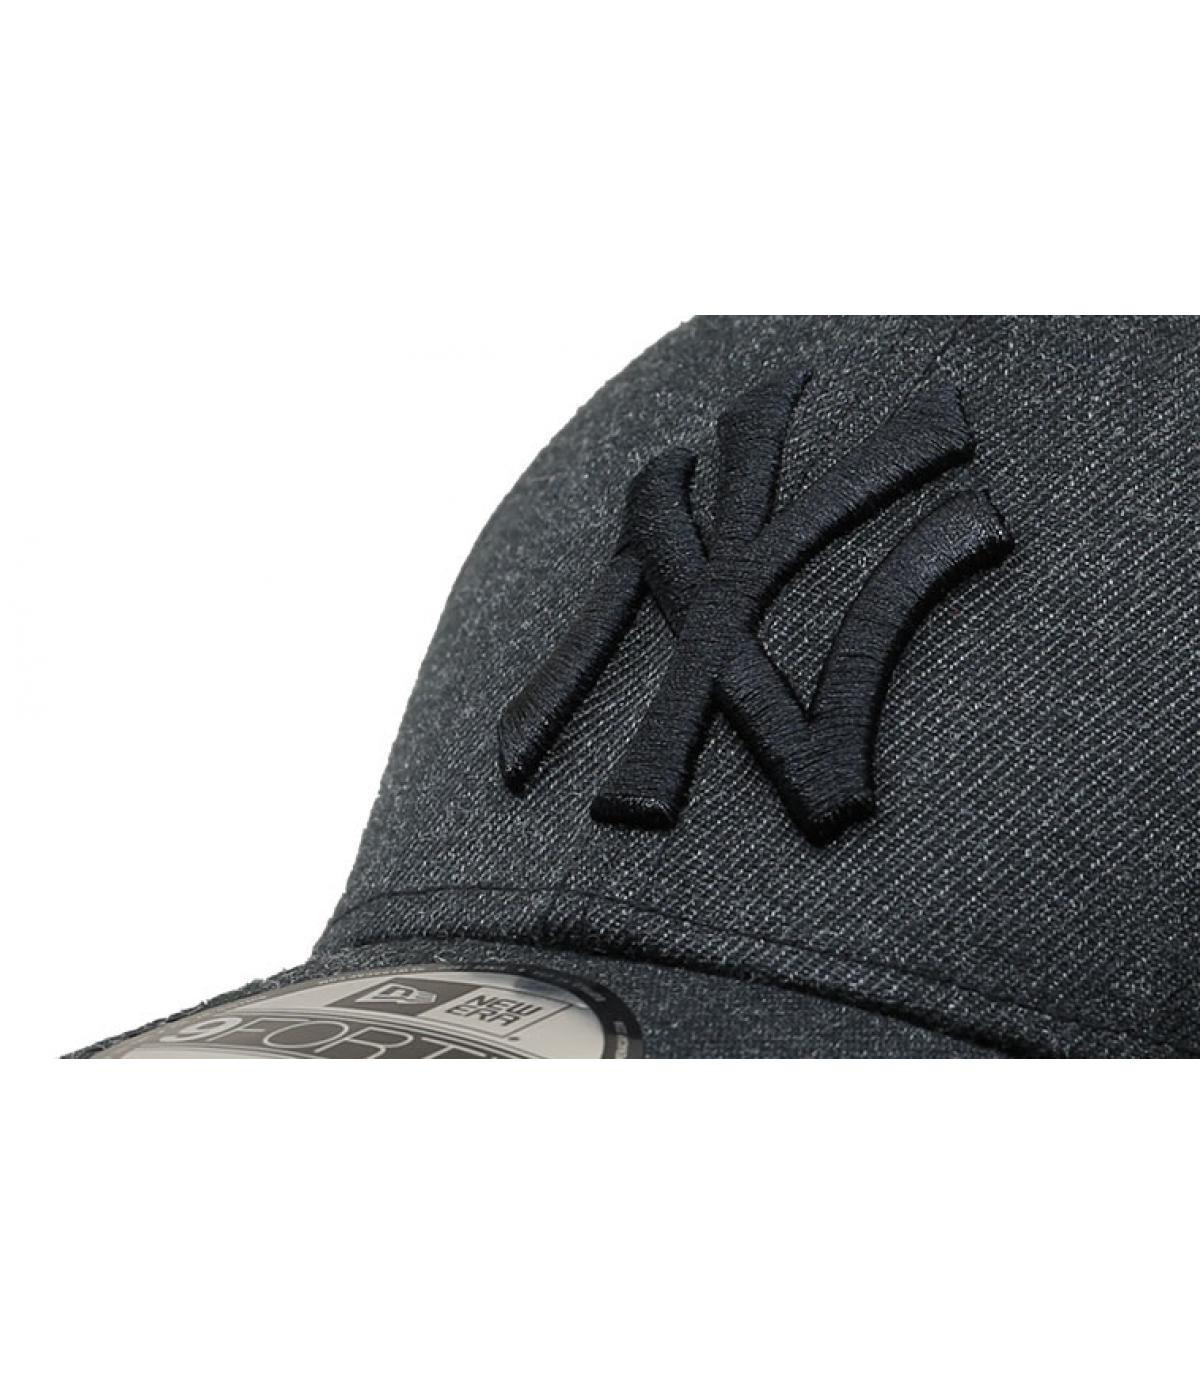 Details Winterized The League NY 940 black - afbeeling 3